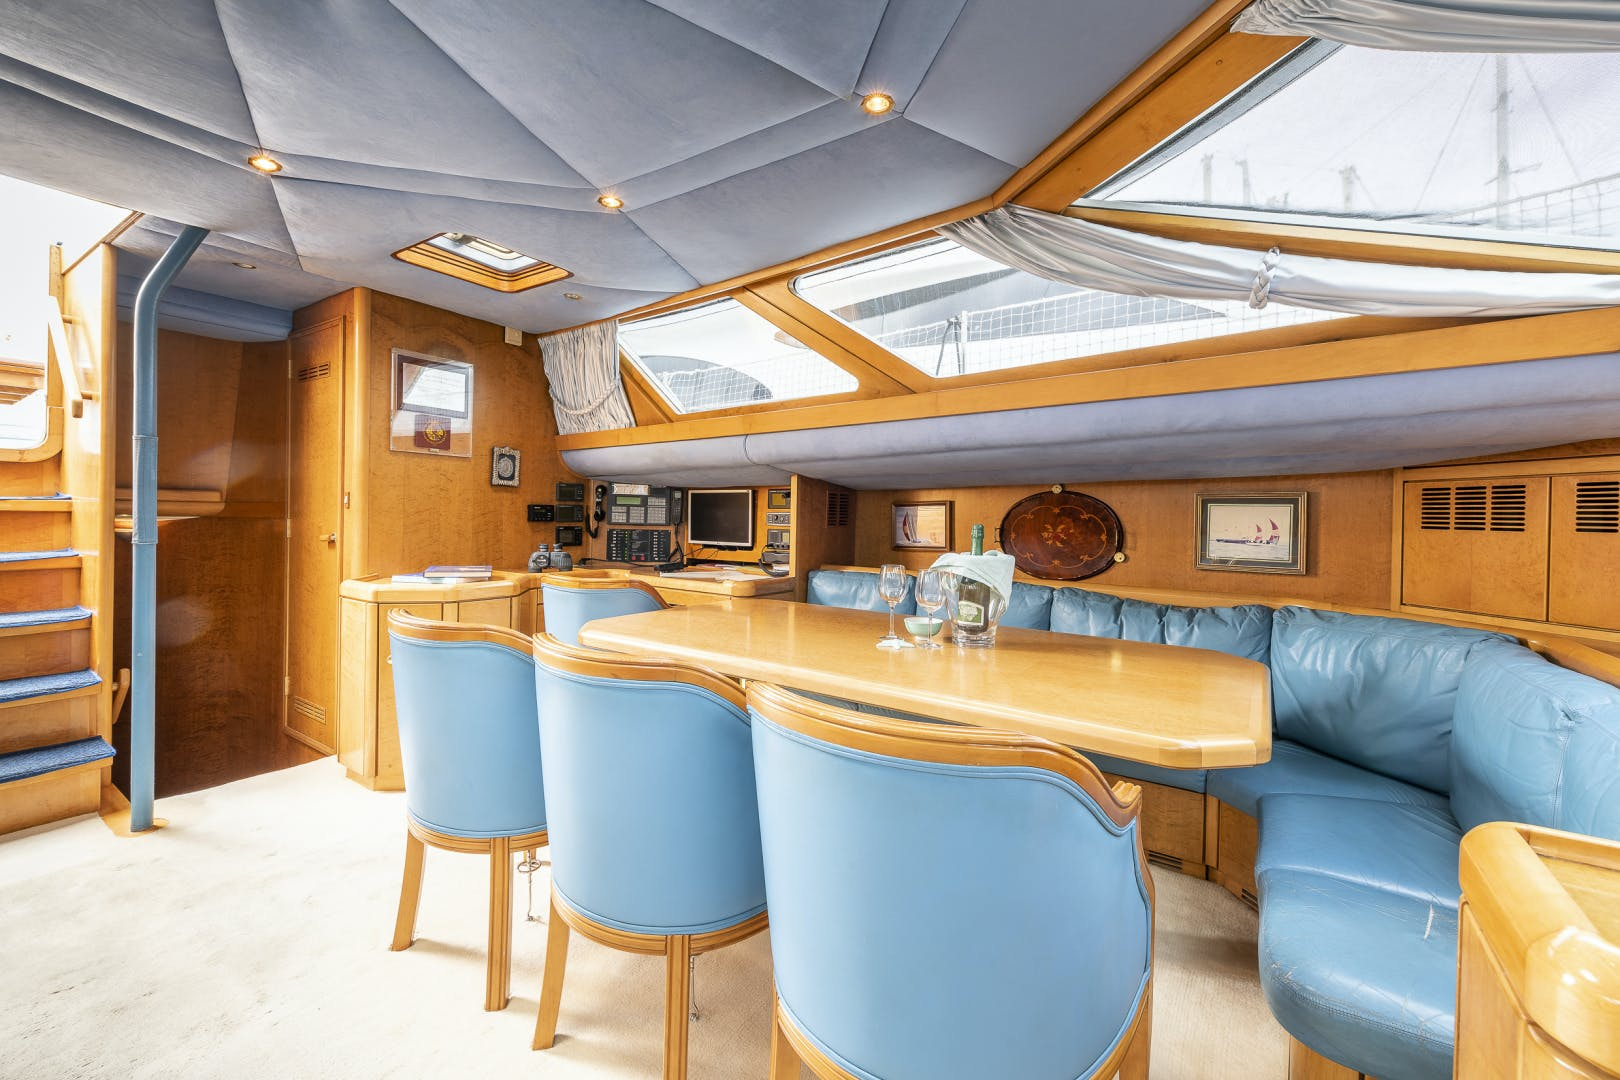 1992 Other 84' Southampton Yacht Services - Tony Castro Rocio | Picture 7 of 19